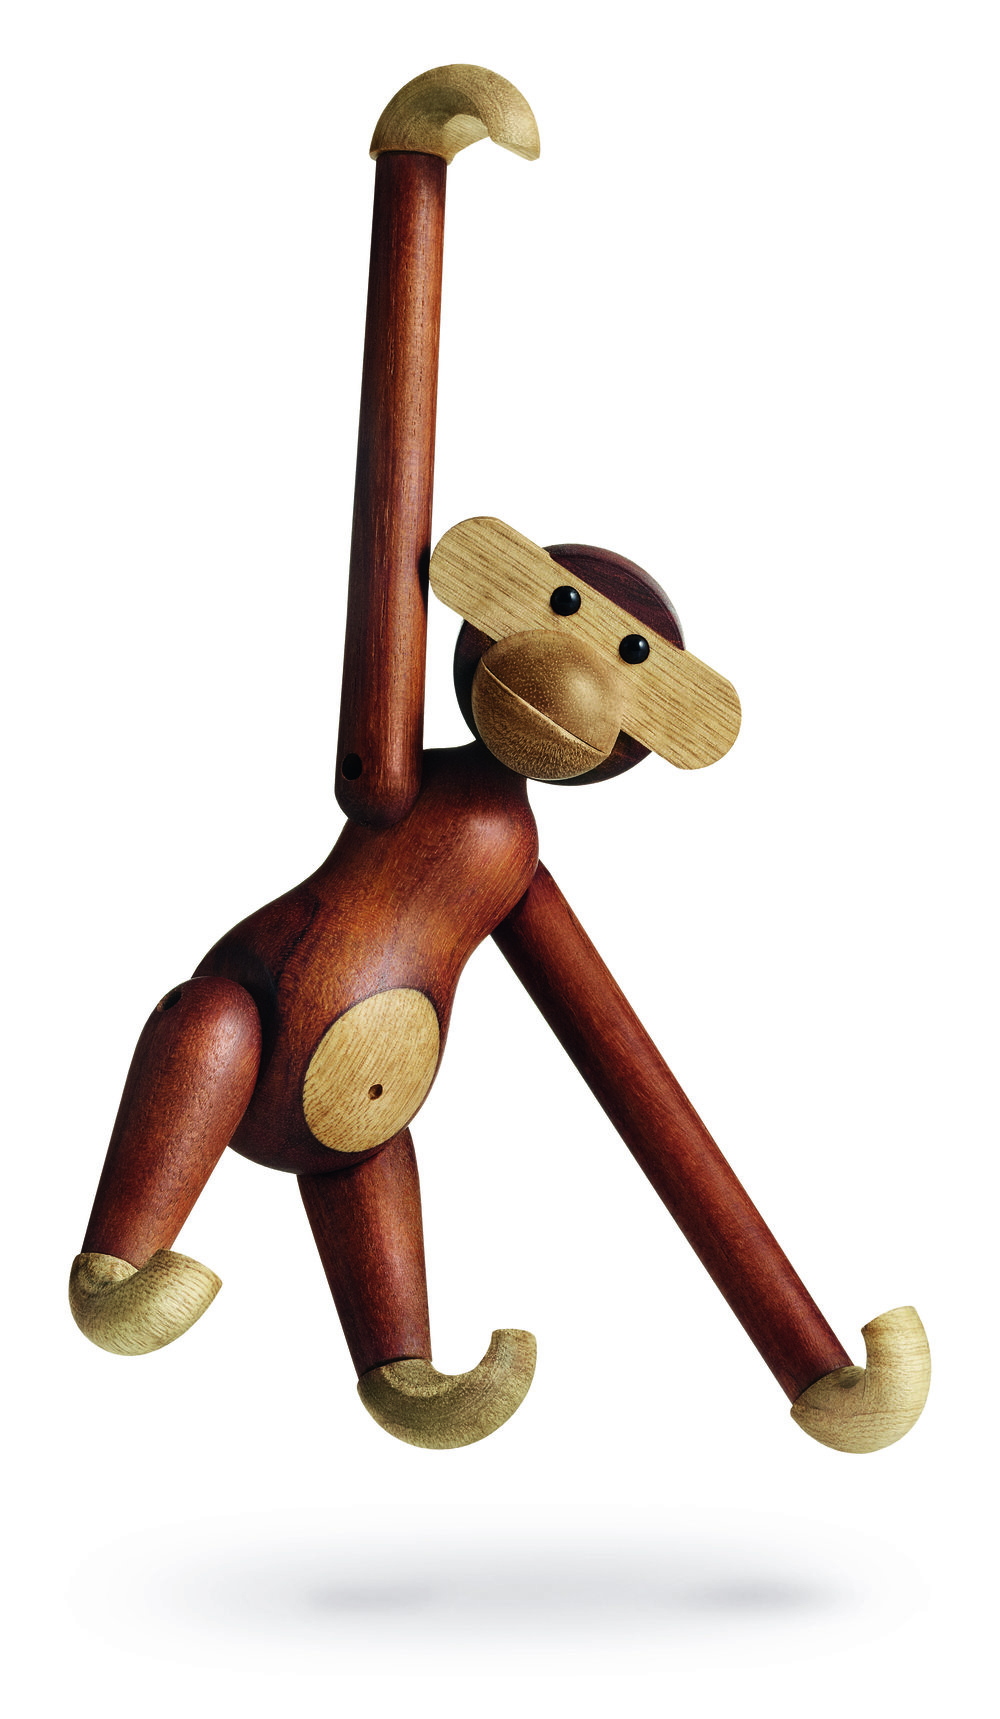 Wooden Monkey toy figurine by Kay Bojesen.   Photo courtesy of    vam.ac.uk